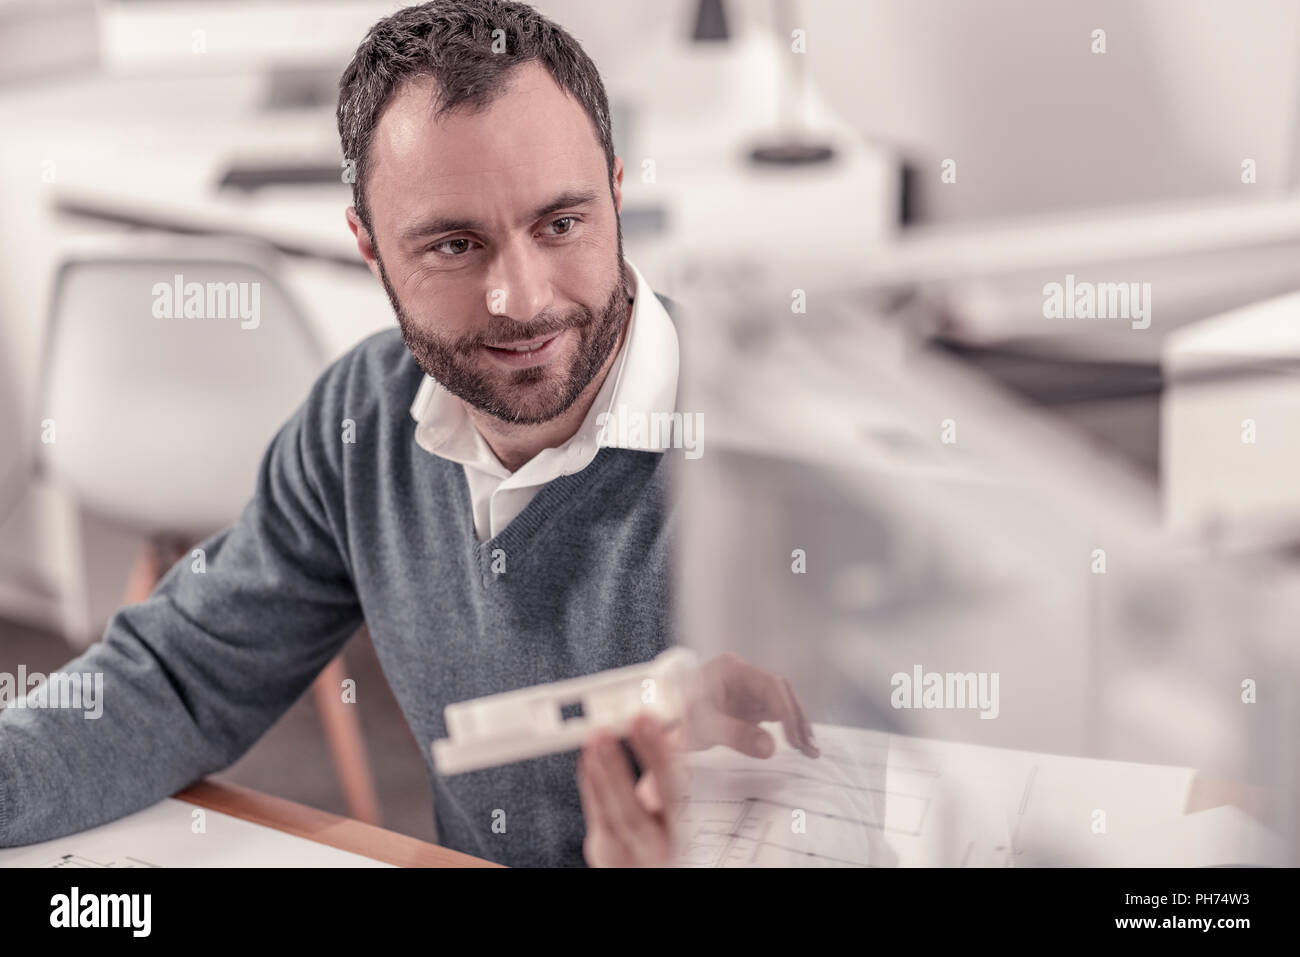 Bearded adult smiling man working at the office - Stock Image